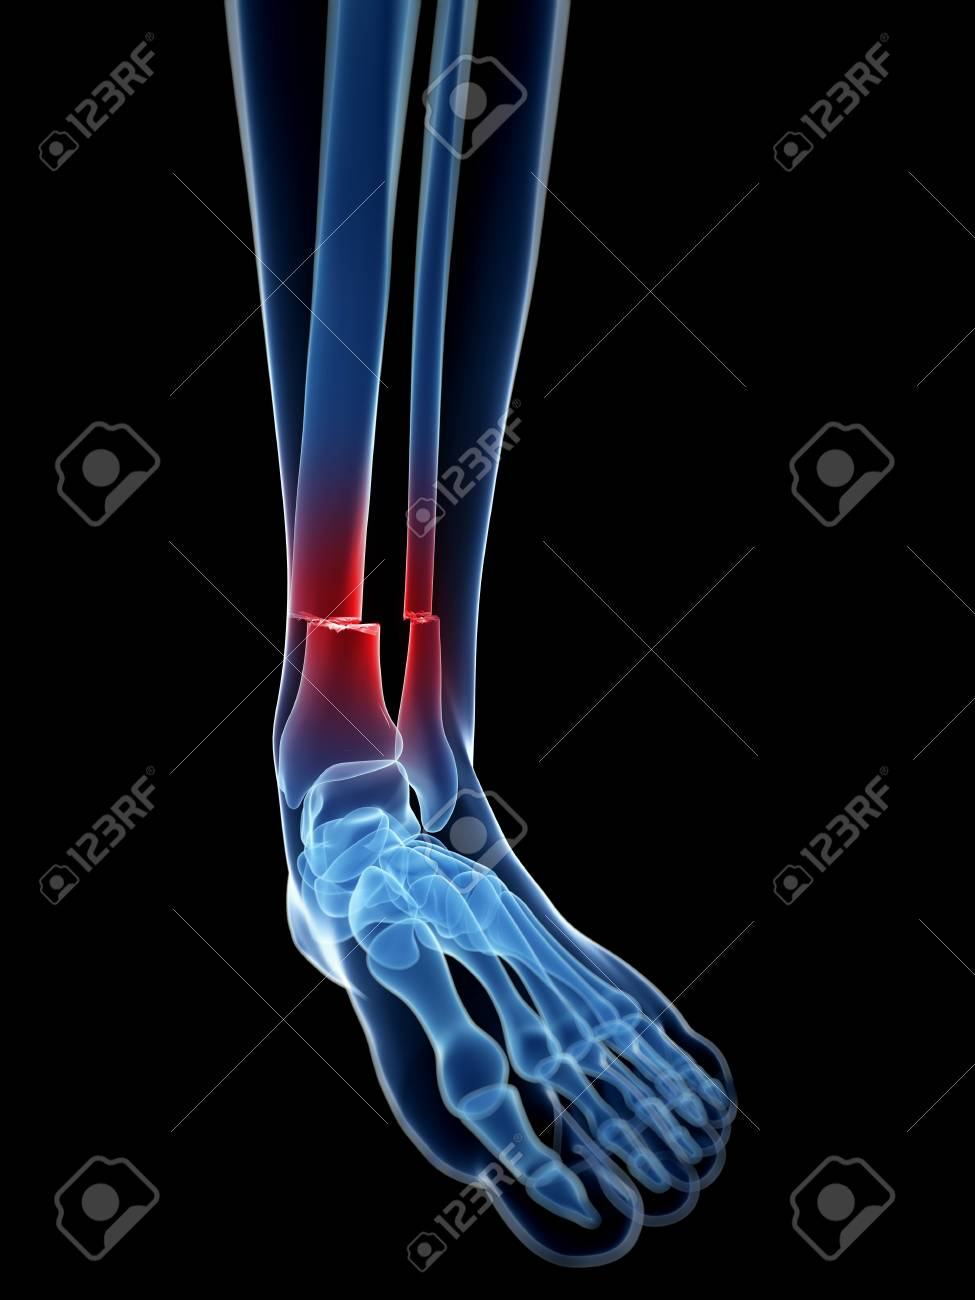 Broken Lower Leg Bones Illustration Stock Photo Picture And